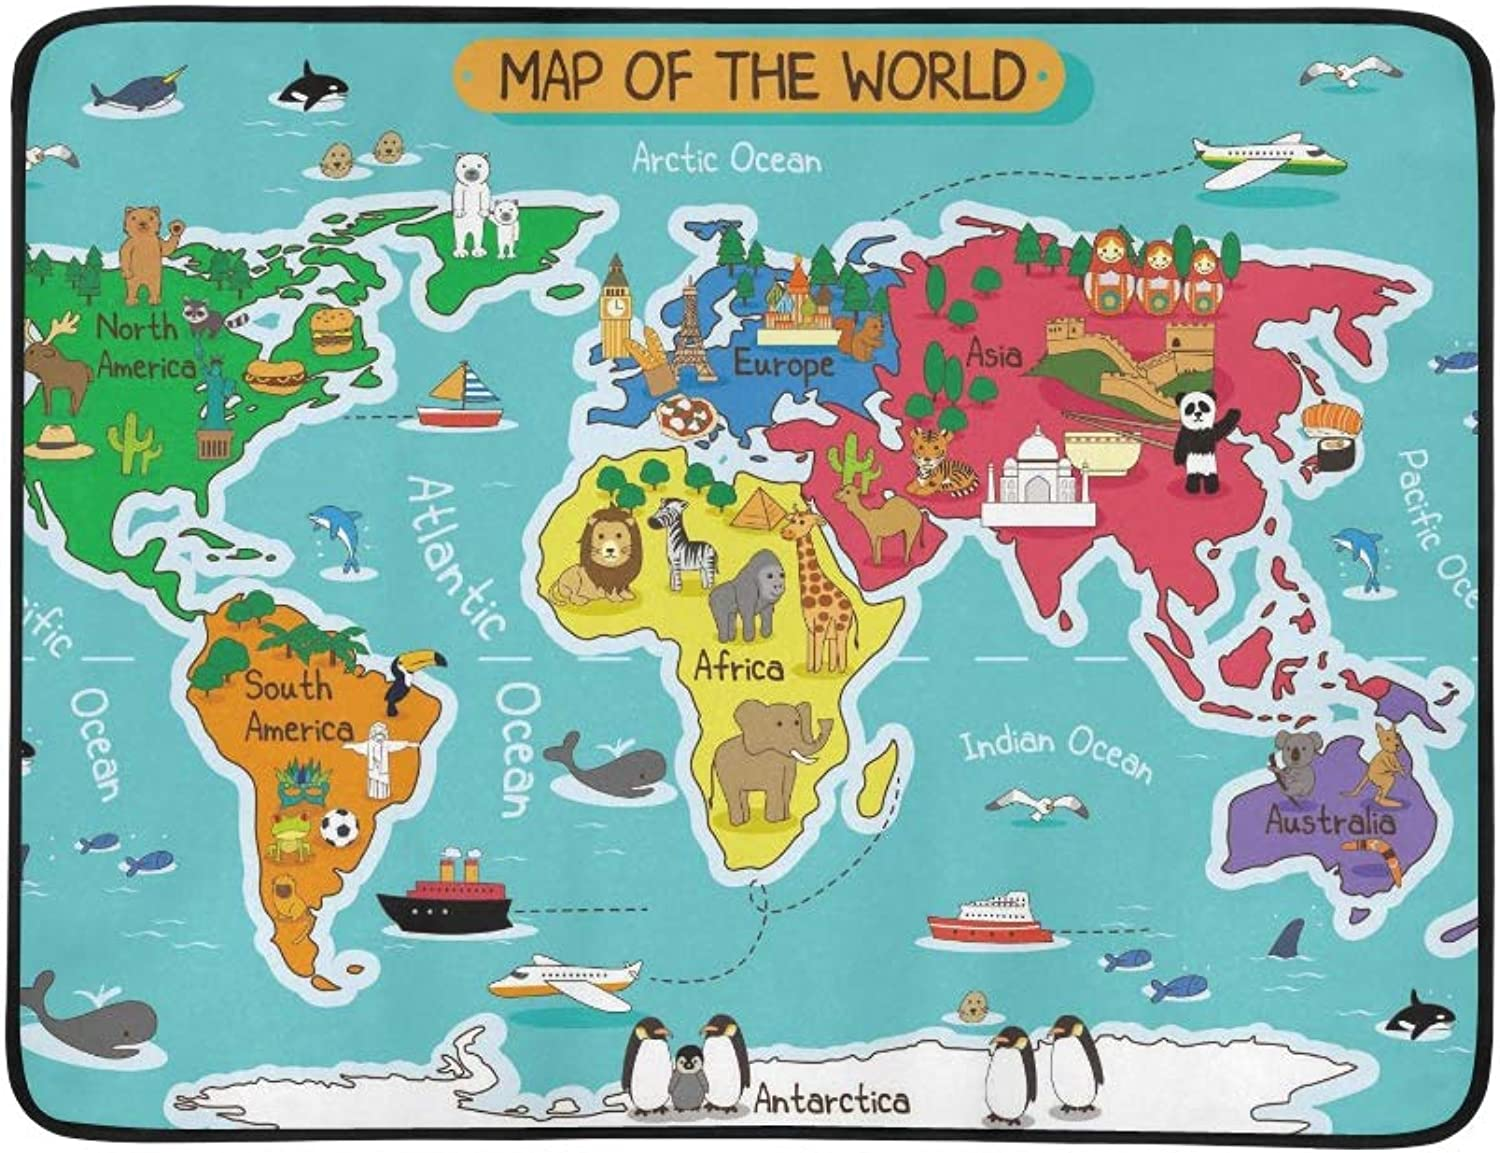 A Vector Illustration of Map of The World Pattern Portable and Foldable Blanket Mat 60x78 Inch Handy Mat for Camping Picnic Beach Indoor Outdoor Travel